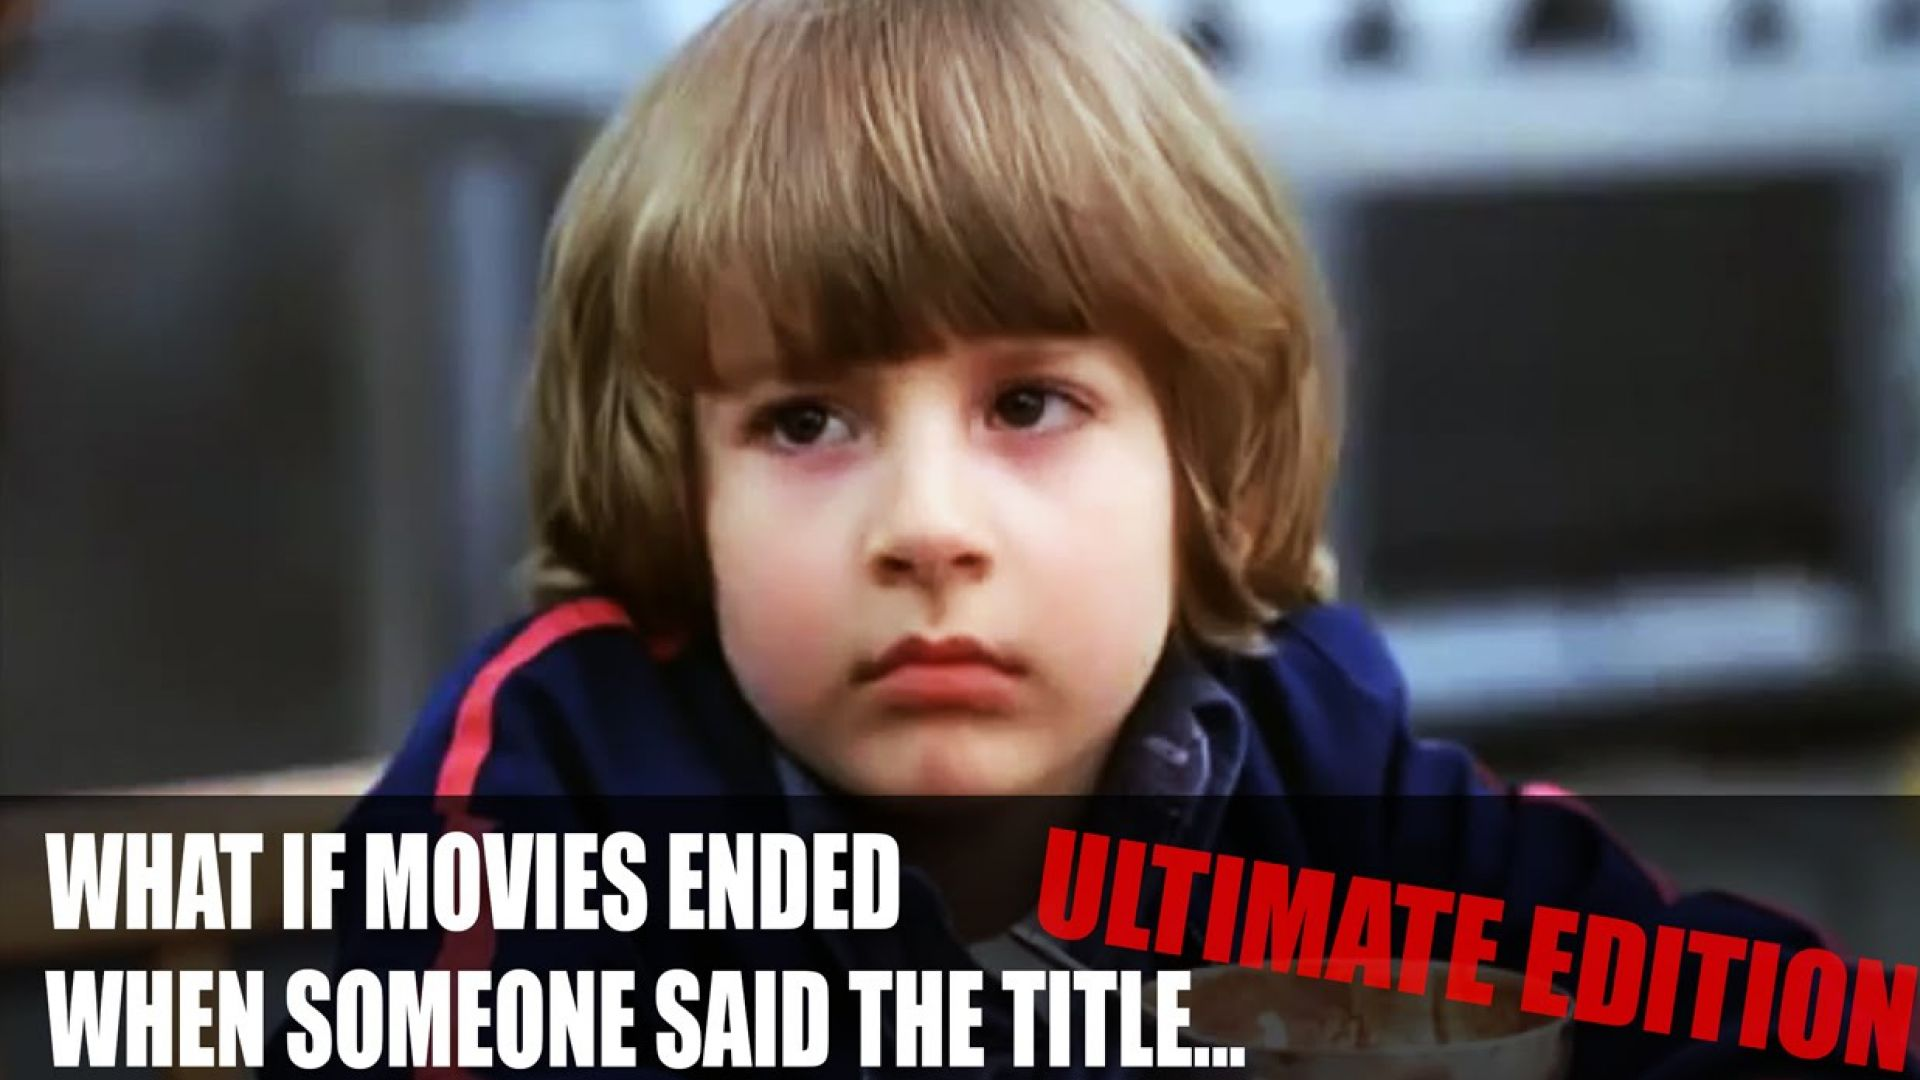 What If Movies Ended When Someone Said The Title